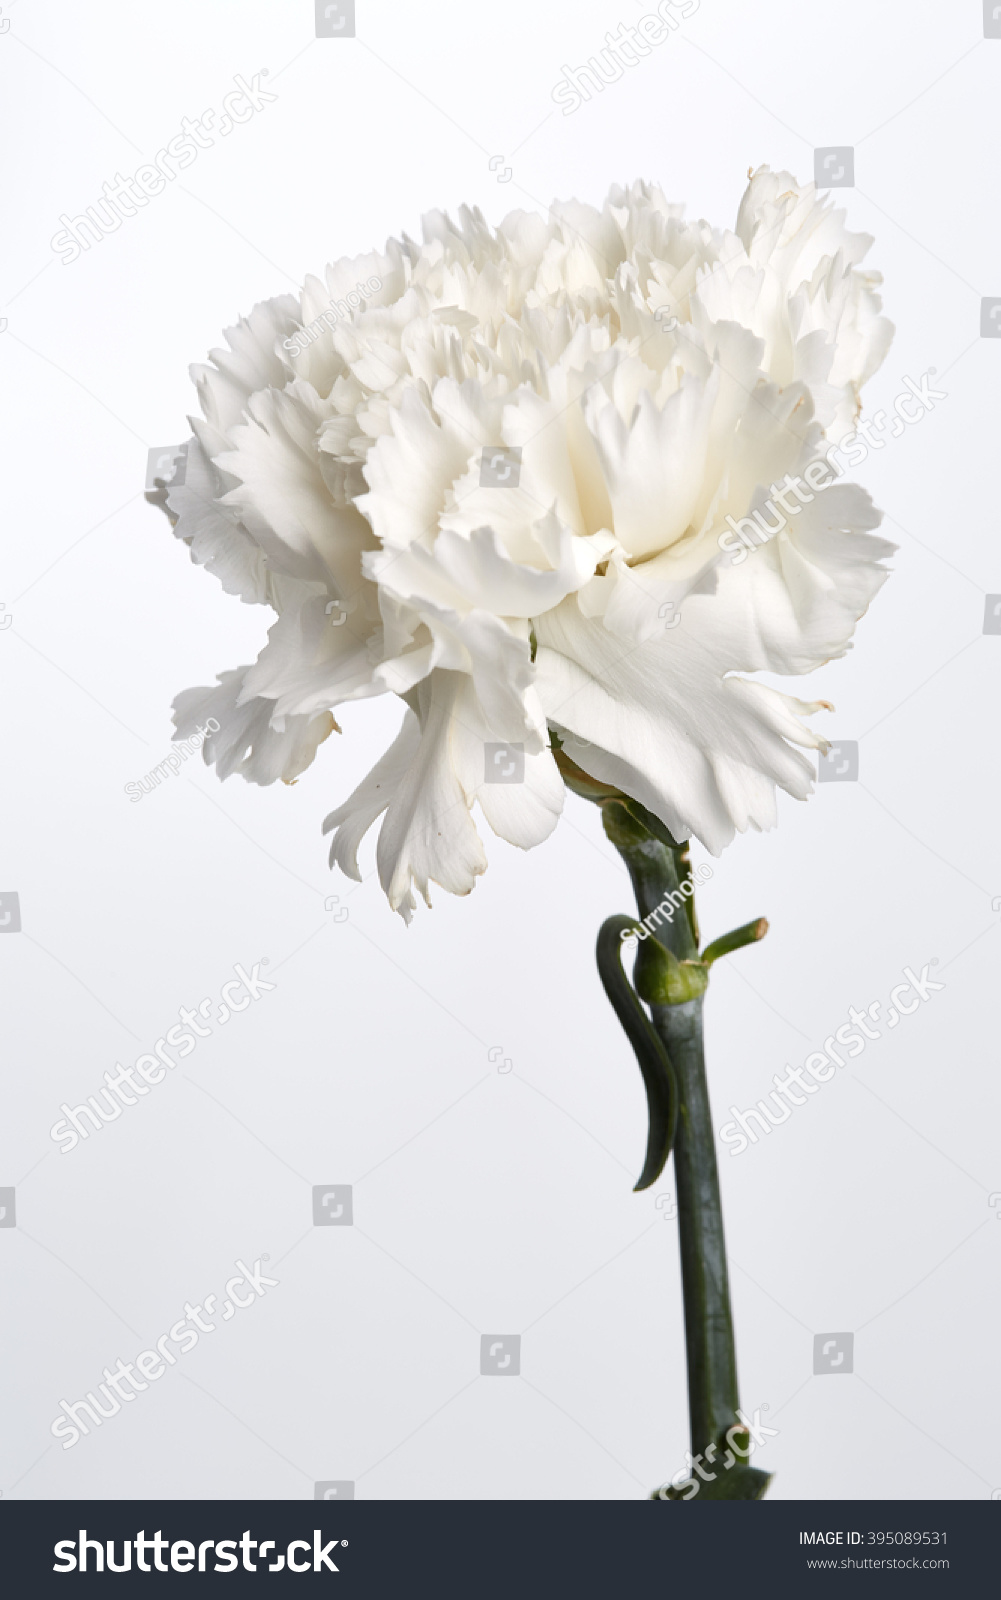 White Carnation Flower On White Background Stock Photo (Royalty Free ...